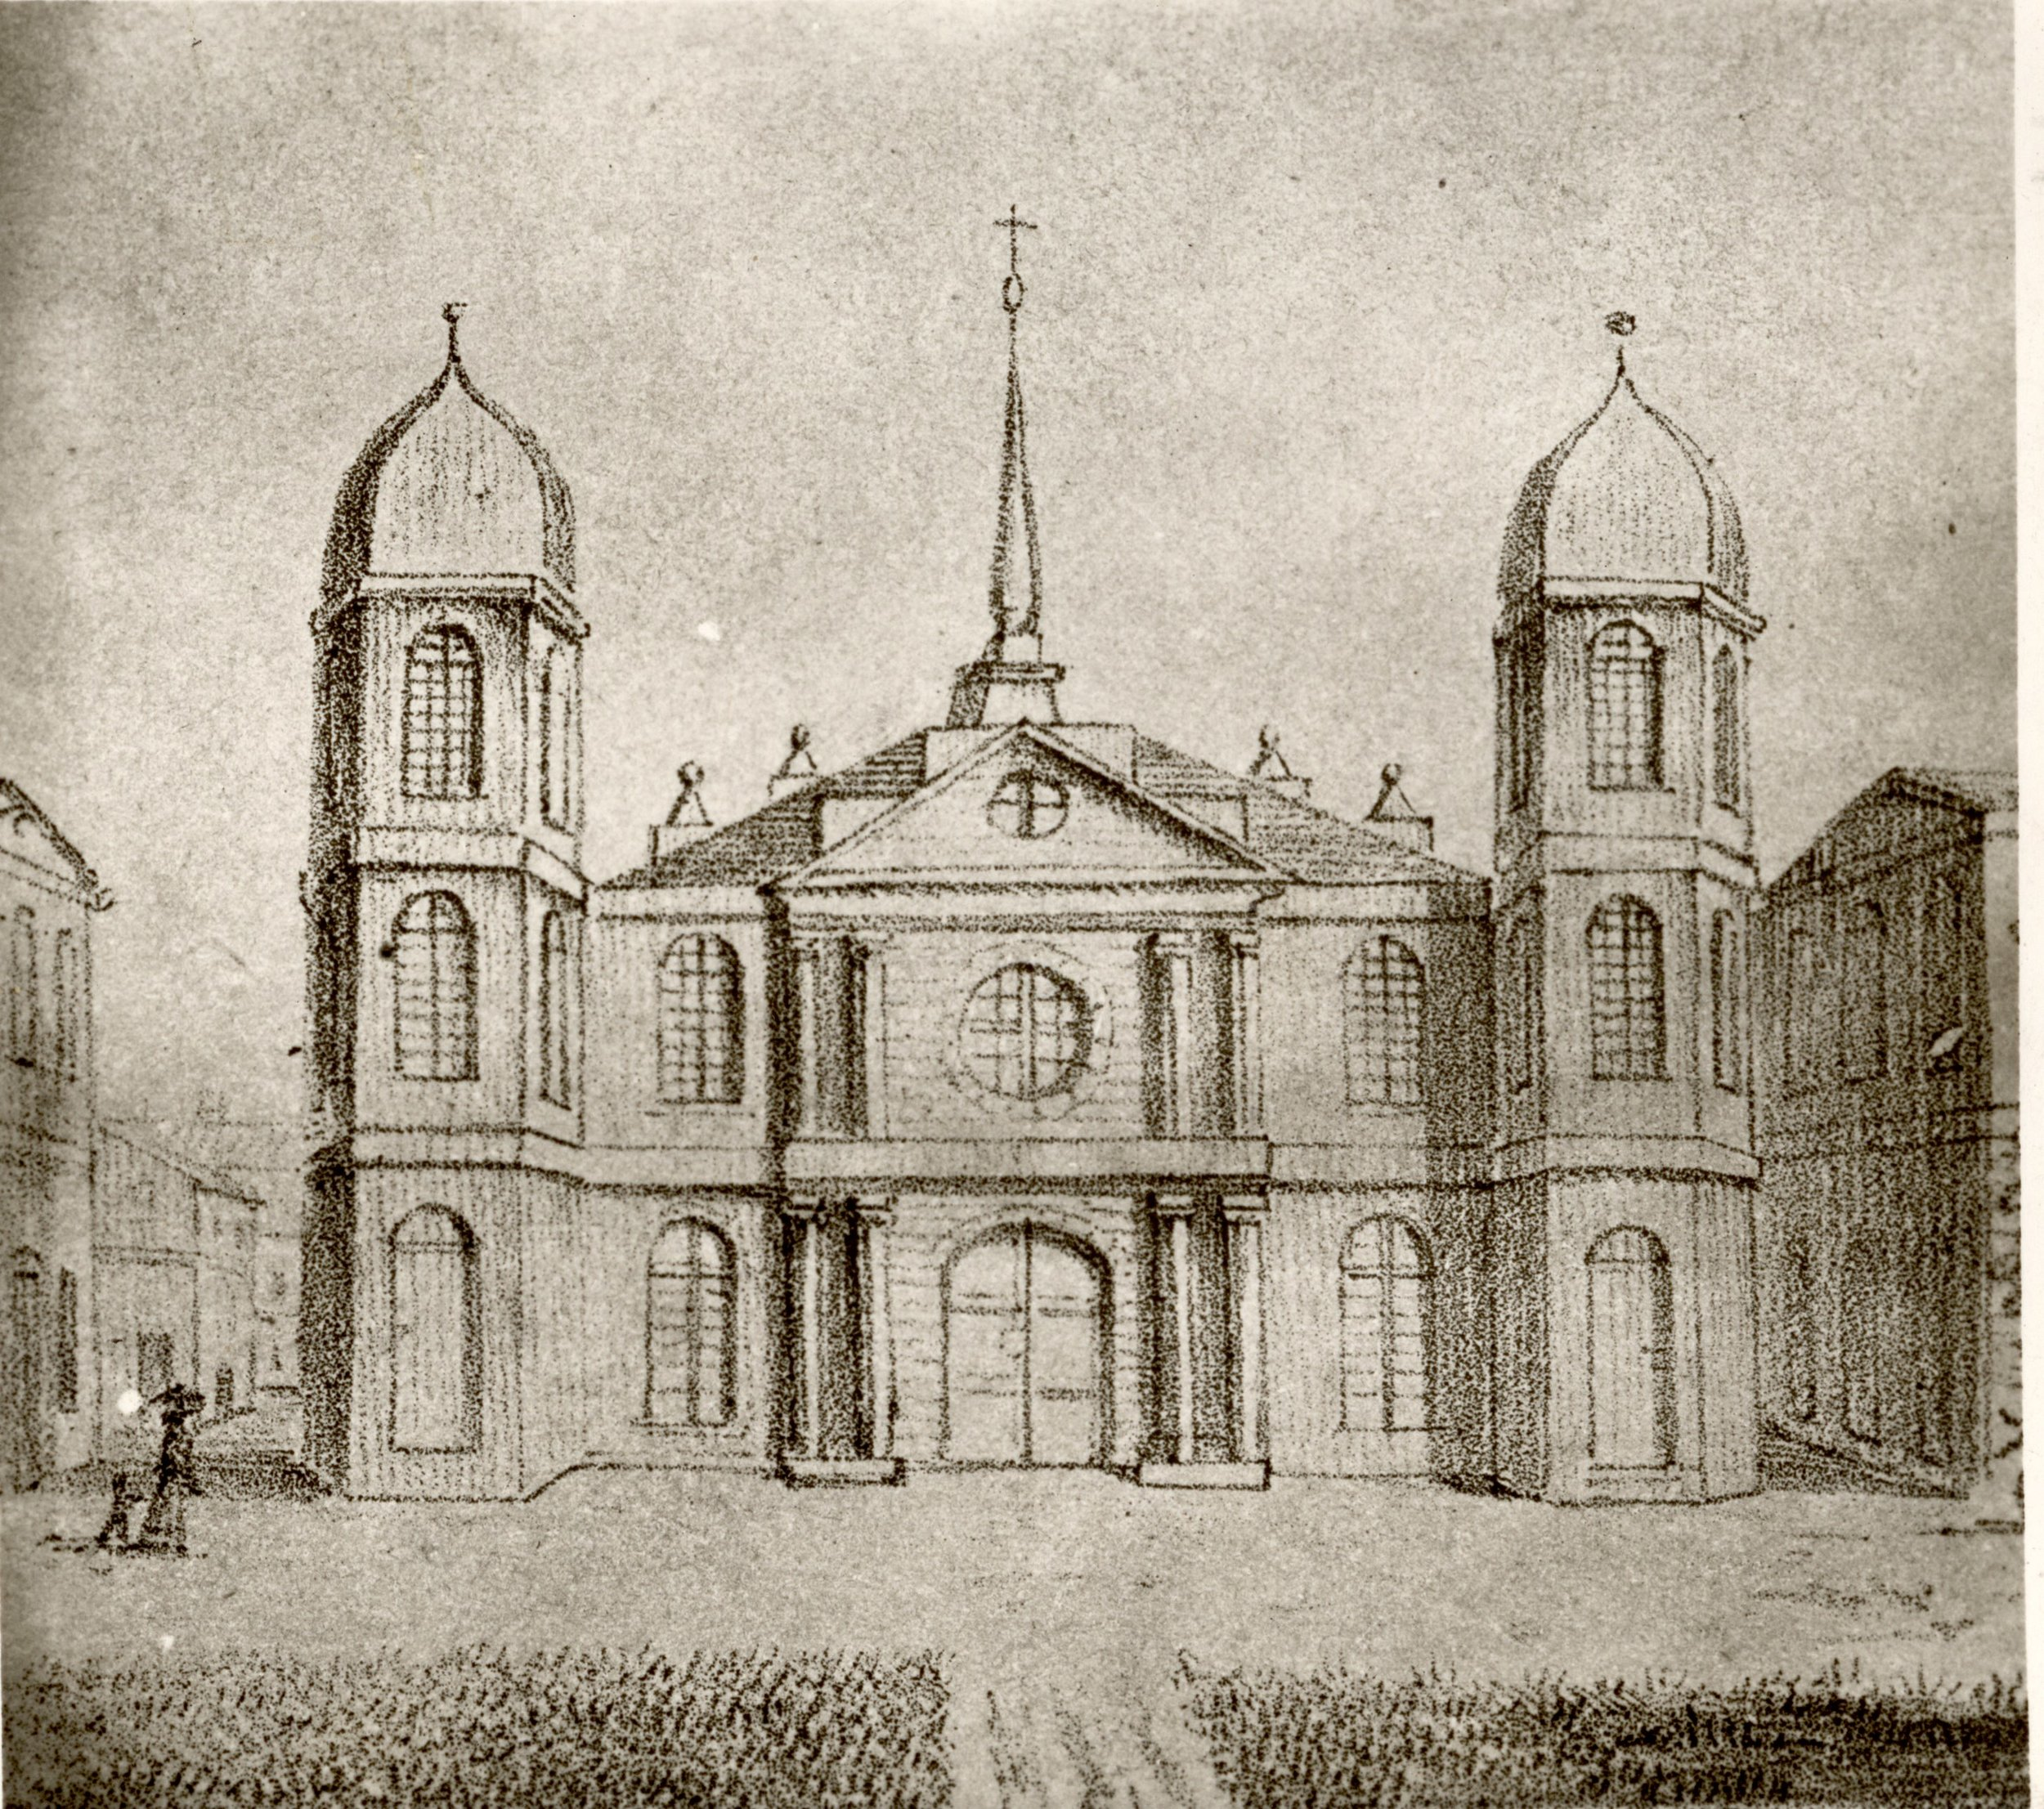 St. Louis Cathedral 1810